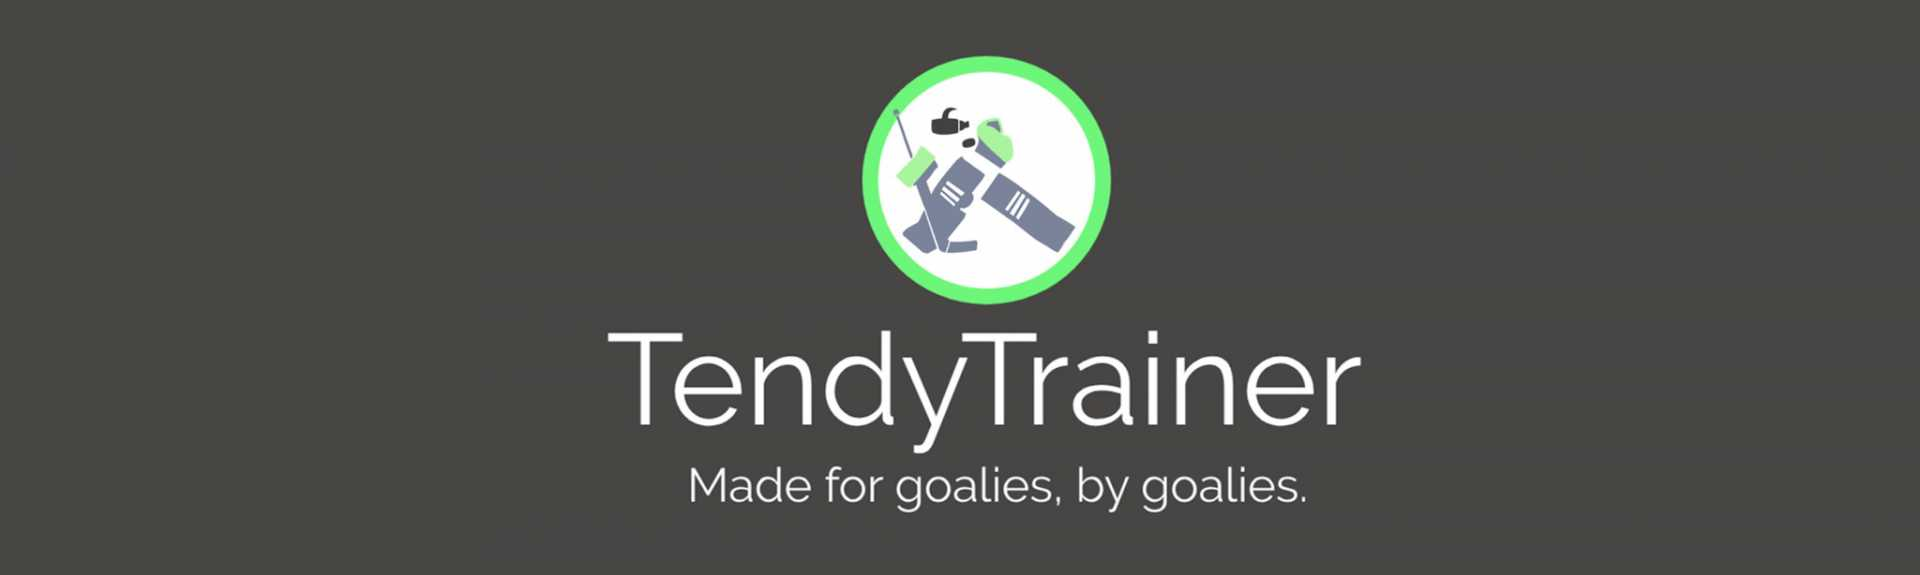 TendyTrainer